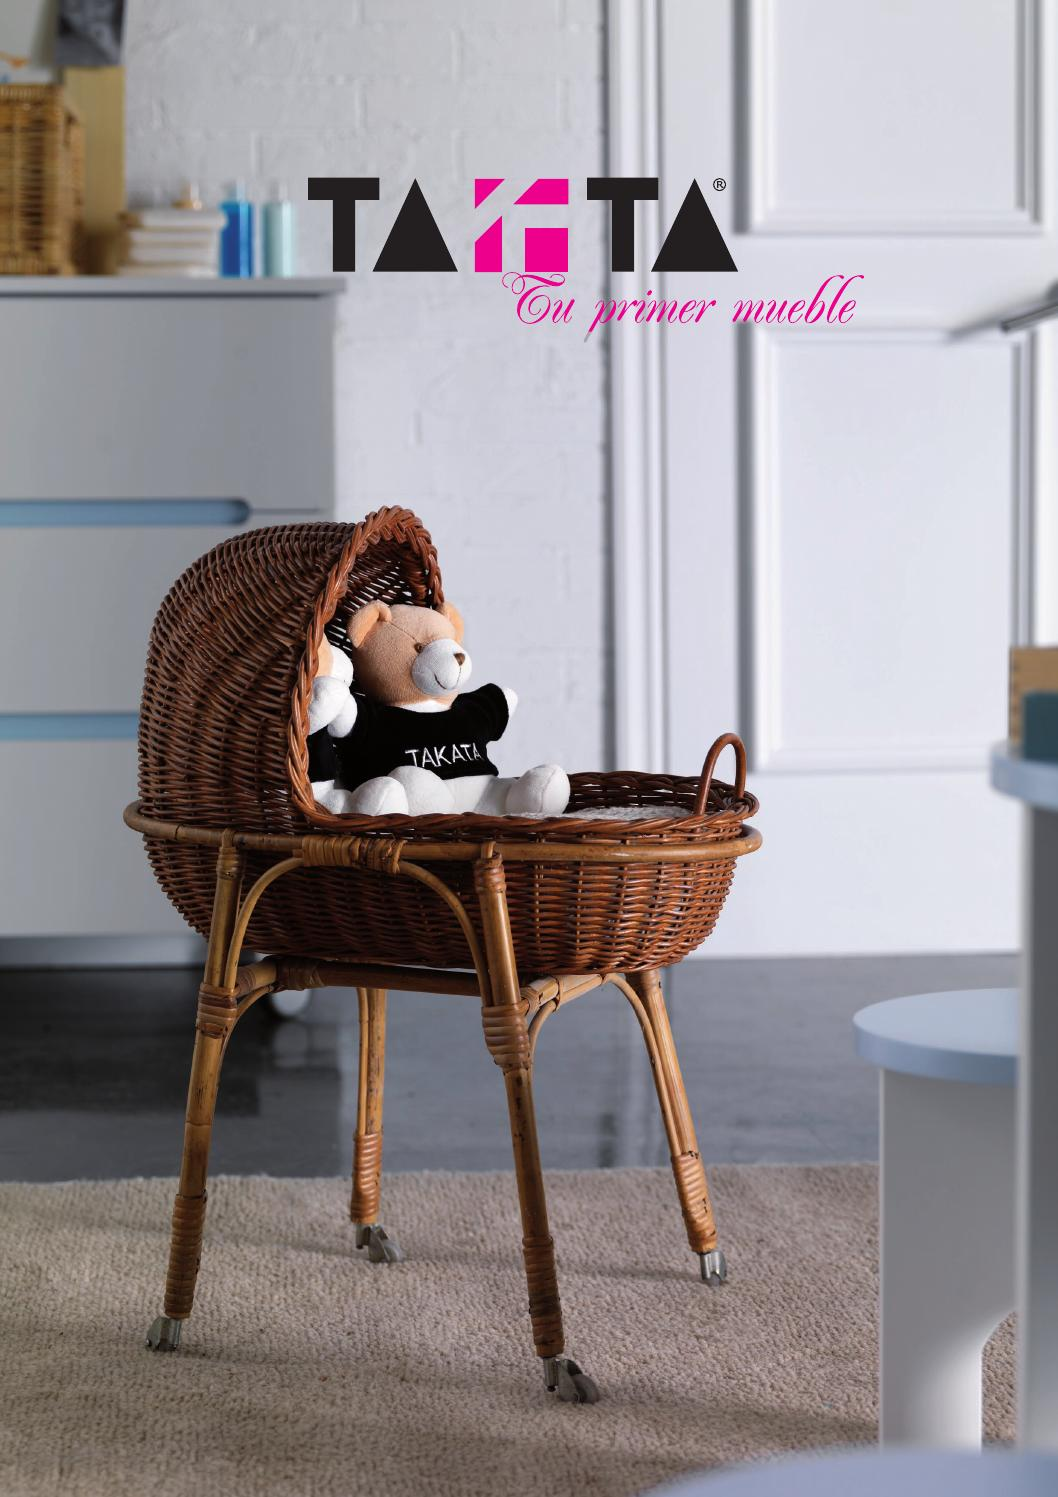 Takta by mobles cavi issuu for Muebles cavi